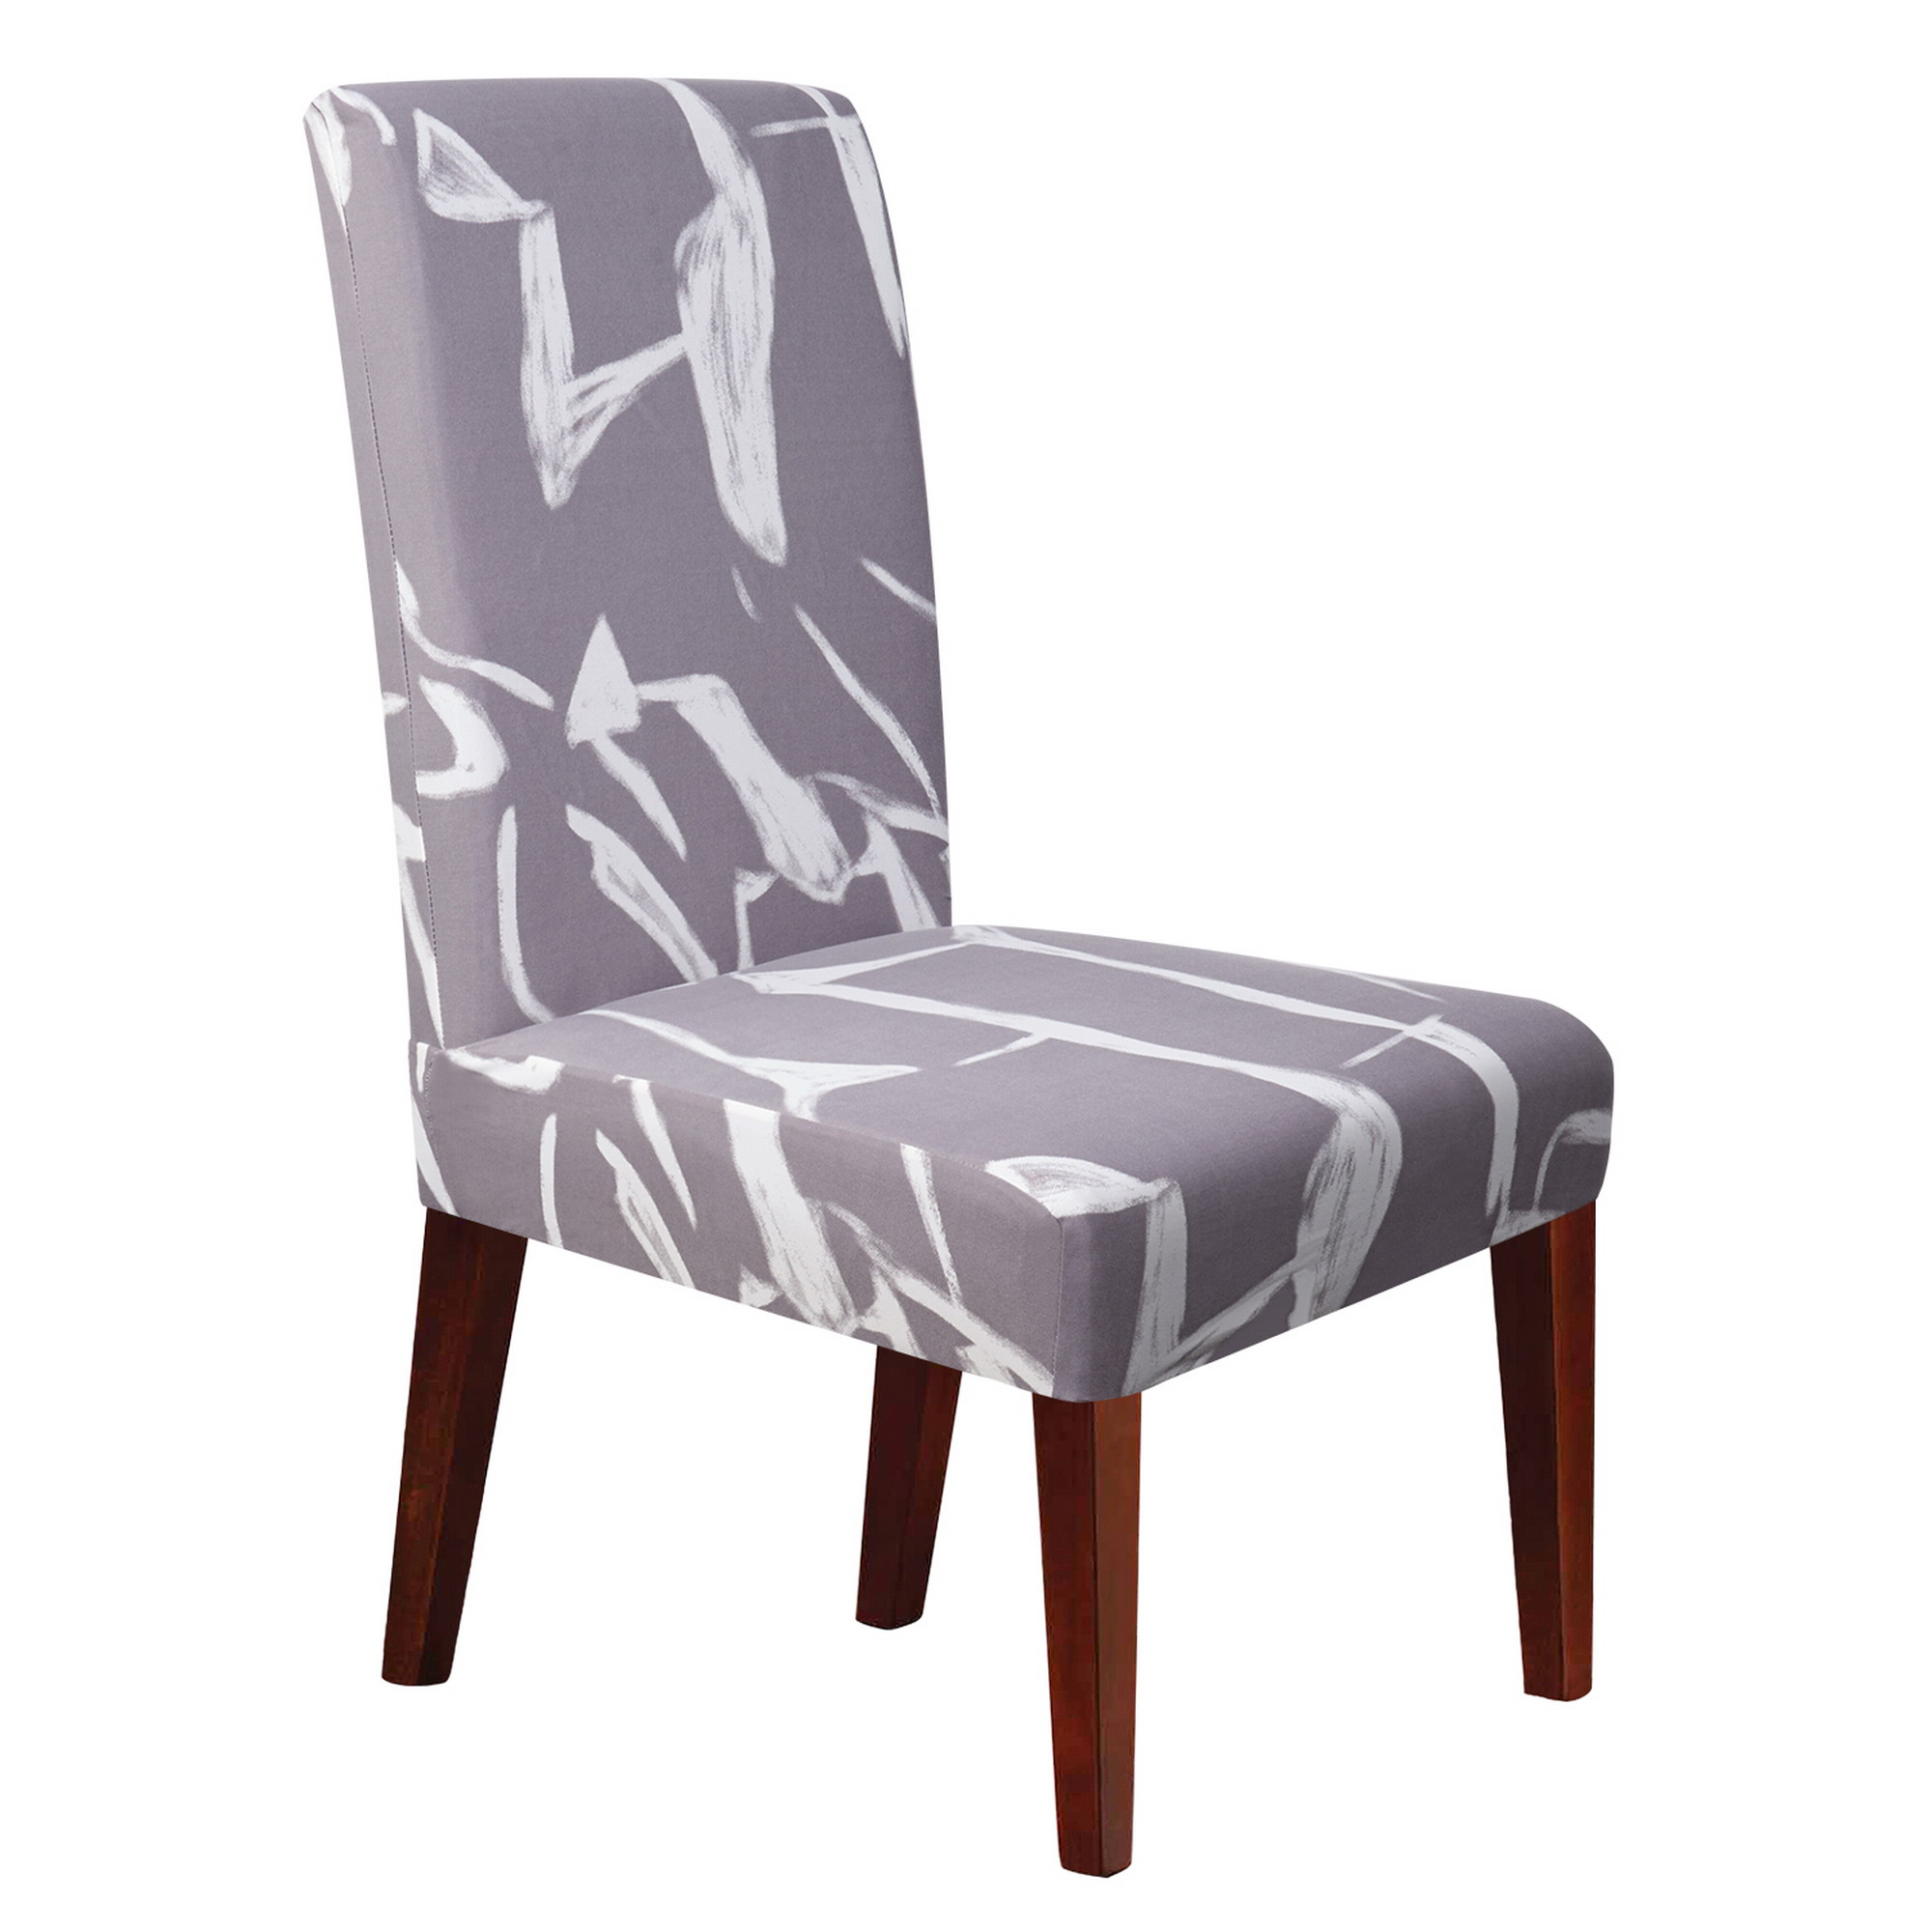 Soft Spandex Stretchy Removable Washable Seat Protector Short Dining Room Chair Slipcovers(GY2)